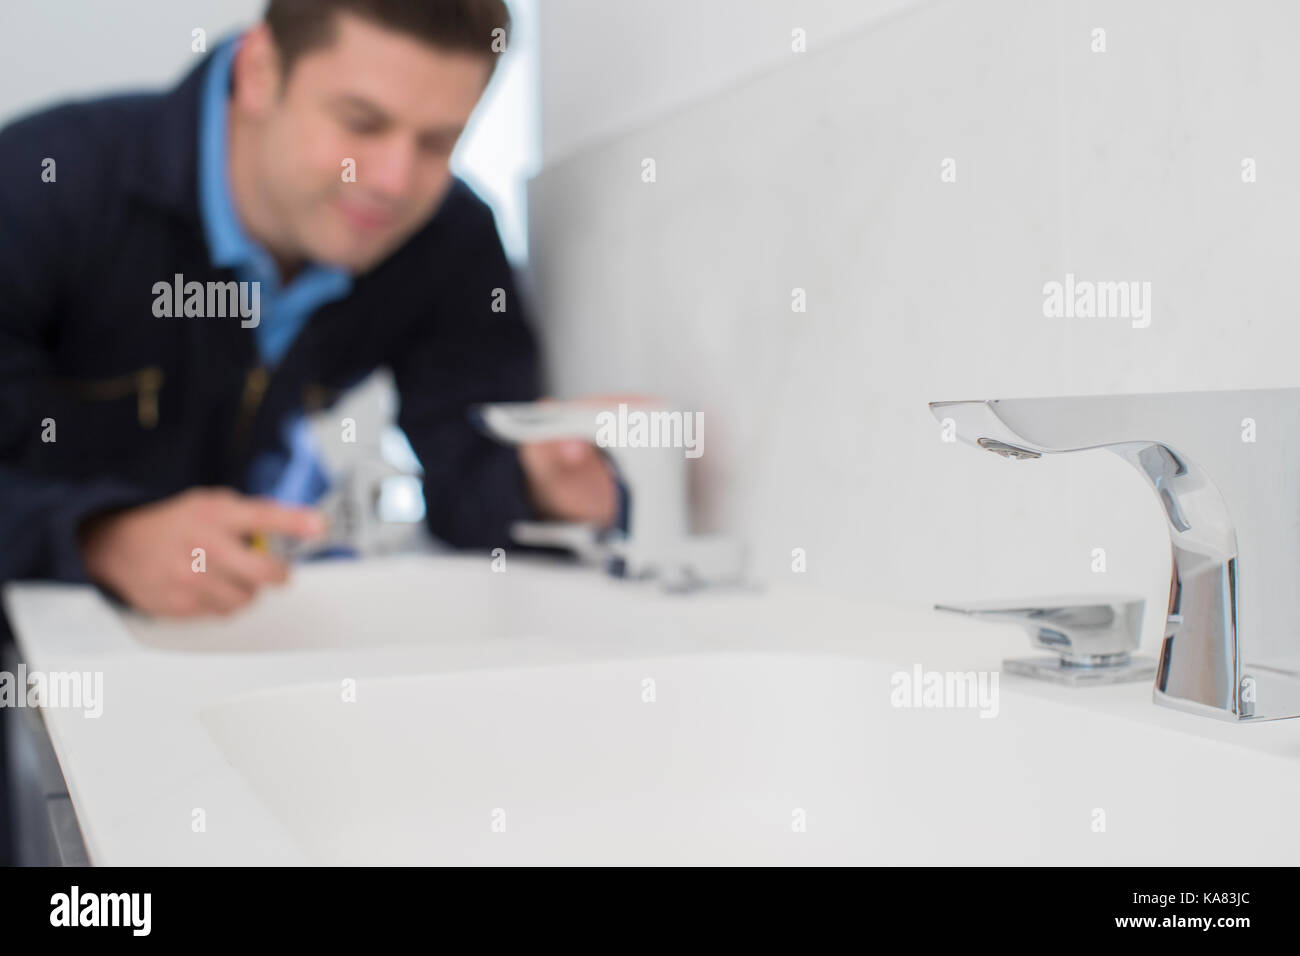 Plumber Working On Sink Using Wrench In Bathroom - Stock Image